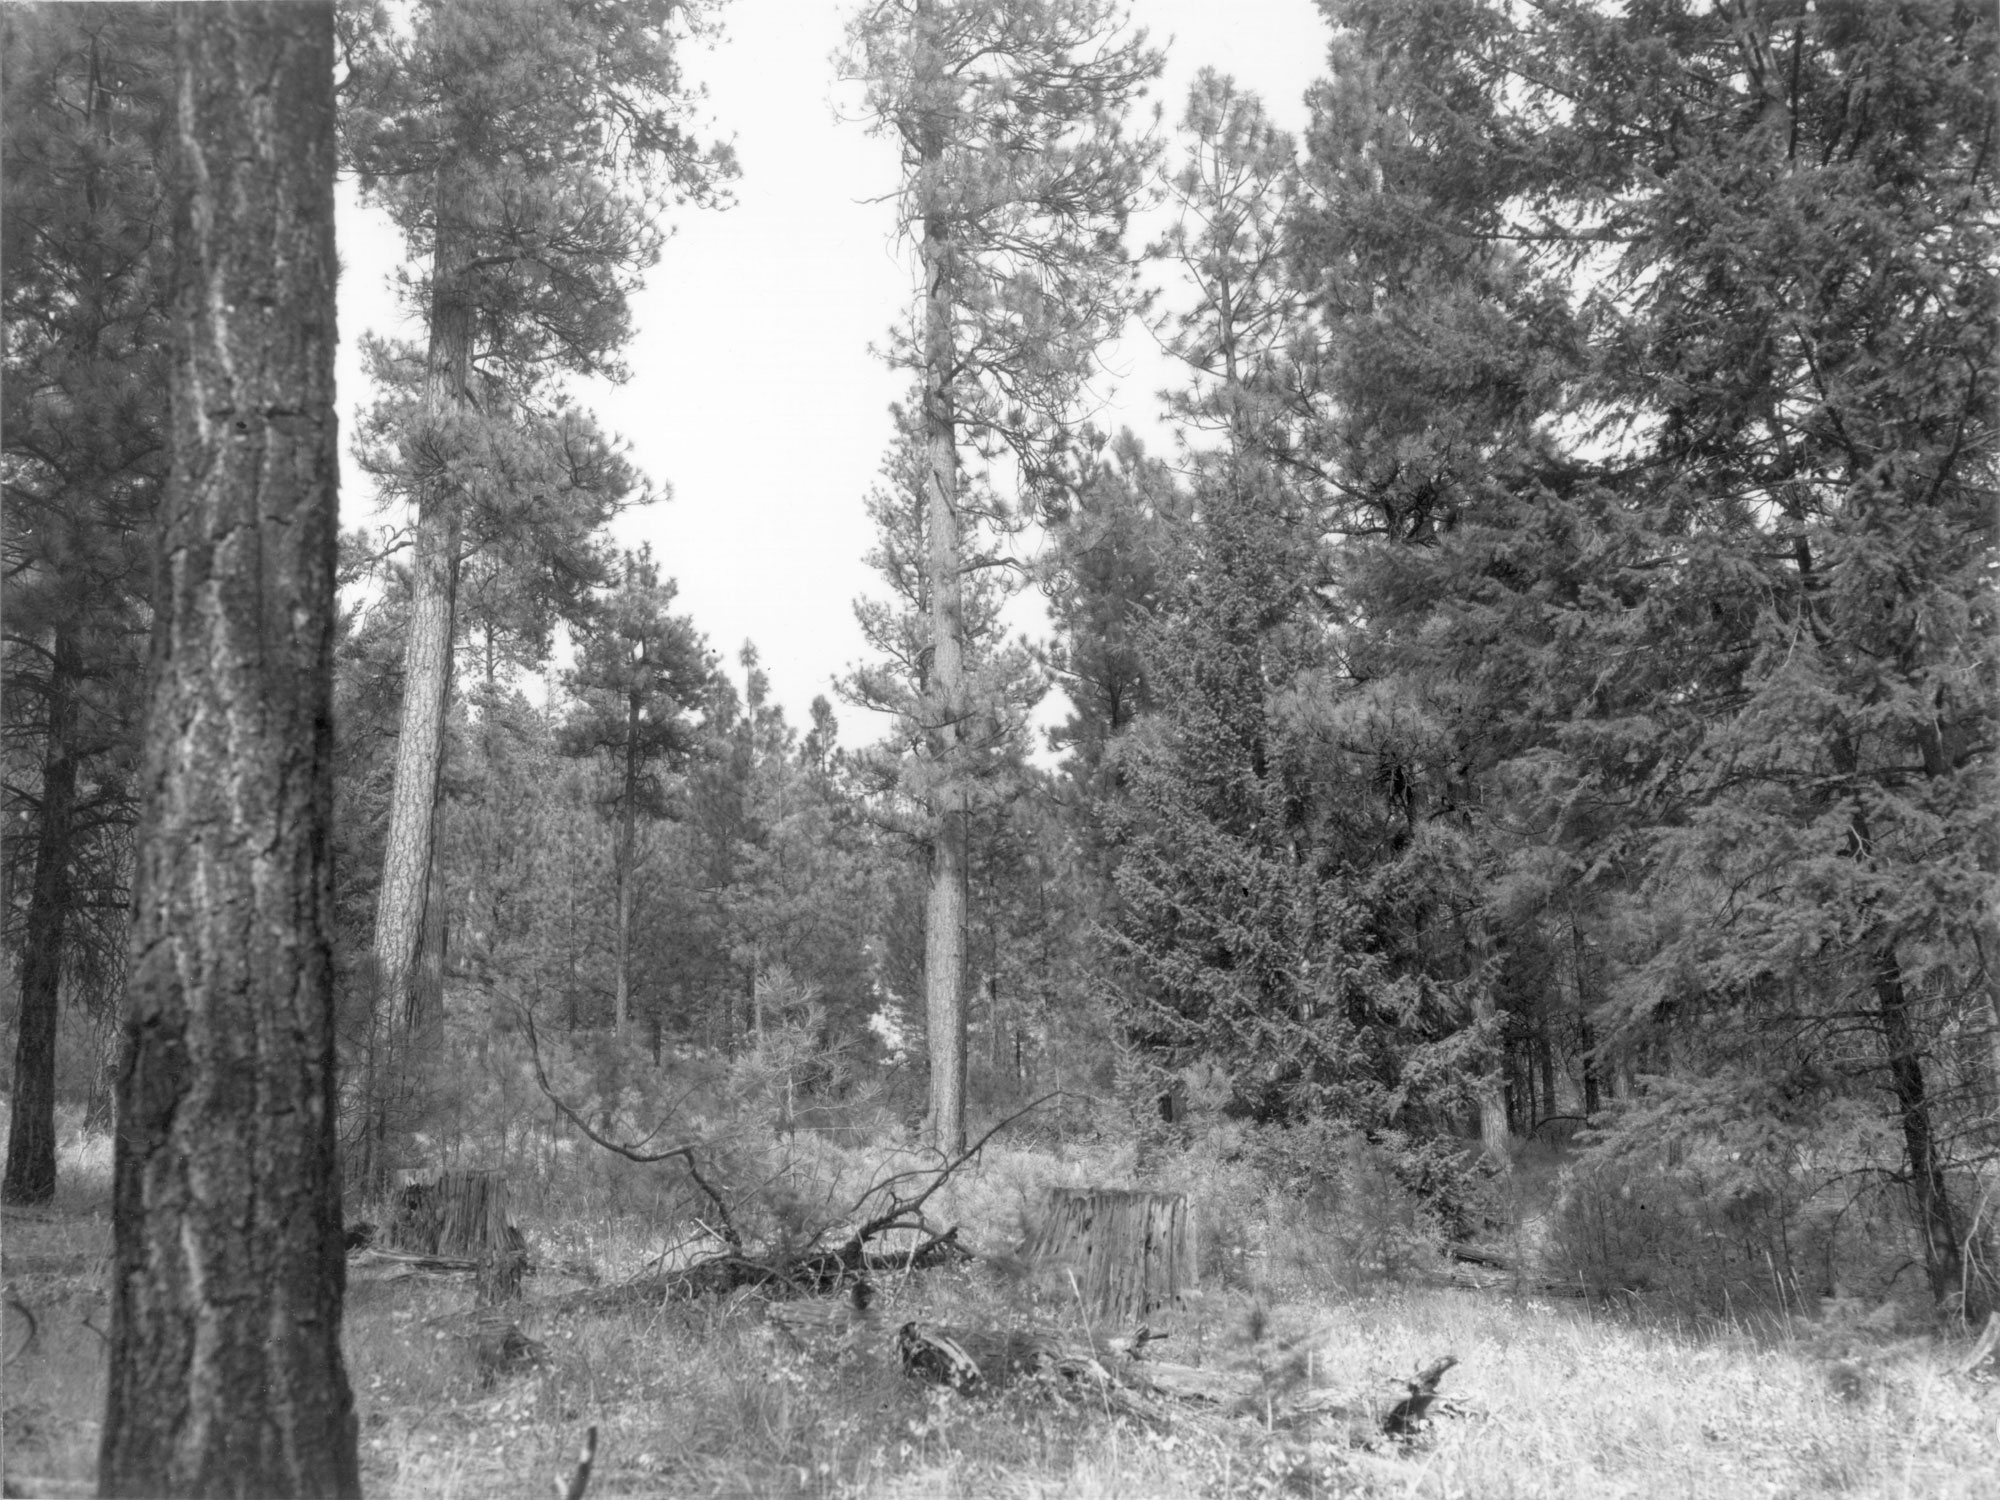 1979. 70 years later. Rapid establishment and growth of new conifers has screened the open view of 1968. Growing conditions for bitterbrush and willow have deteriorated because of competition for sunlight and moisture. Partial cutting and thinning in 1952, 1955, 1962, and 1966 have allowed more conifer regeneration than the early, light 1906-9 cut.